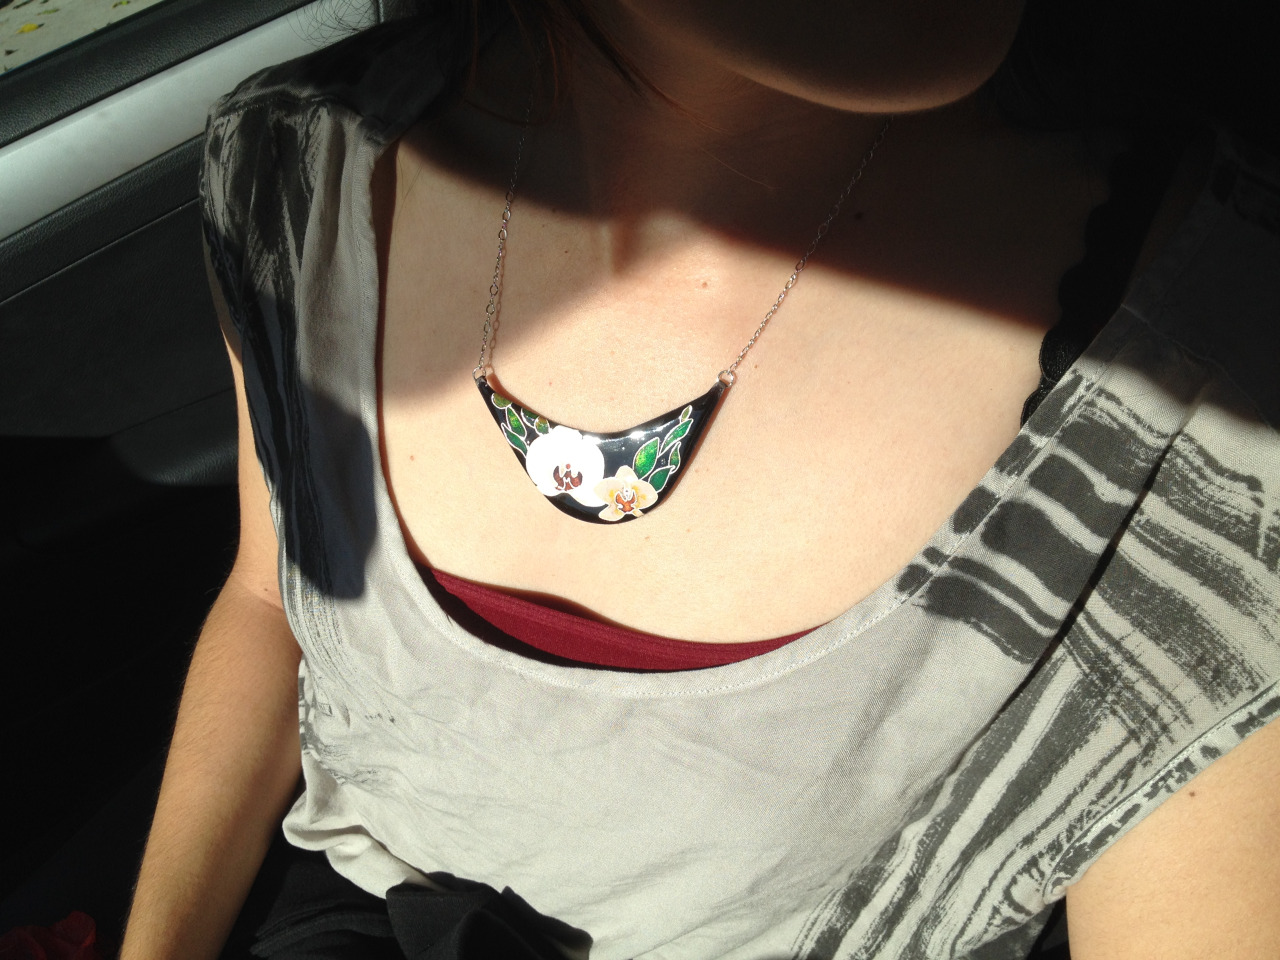 After lots of patience and hours, my orchid cloisonne necklace is done!